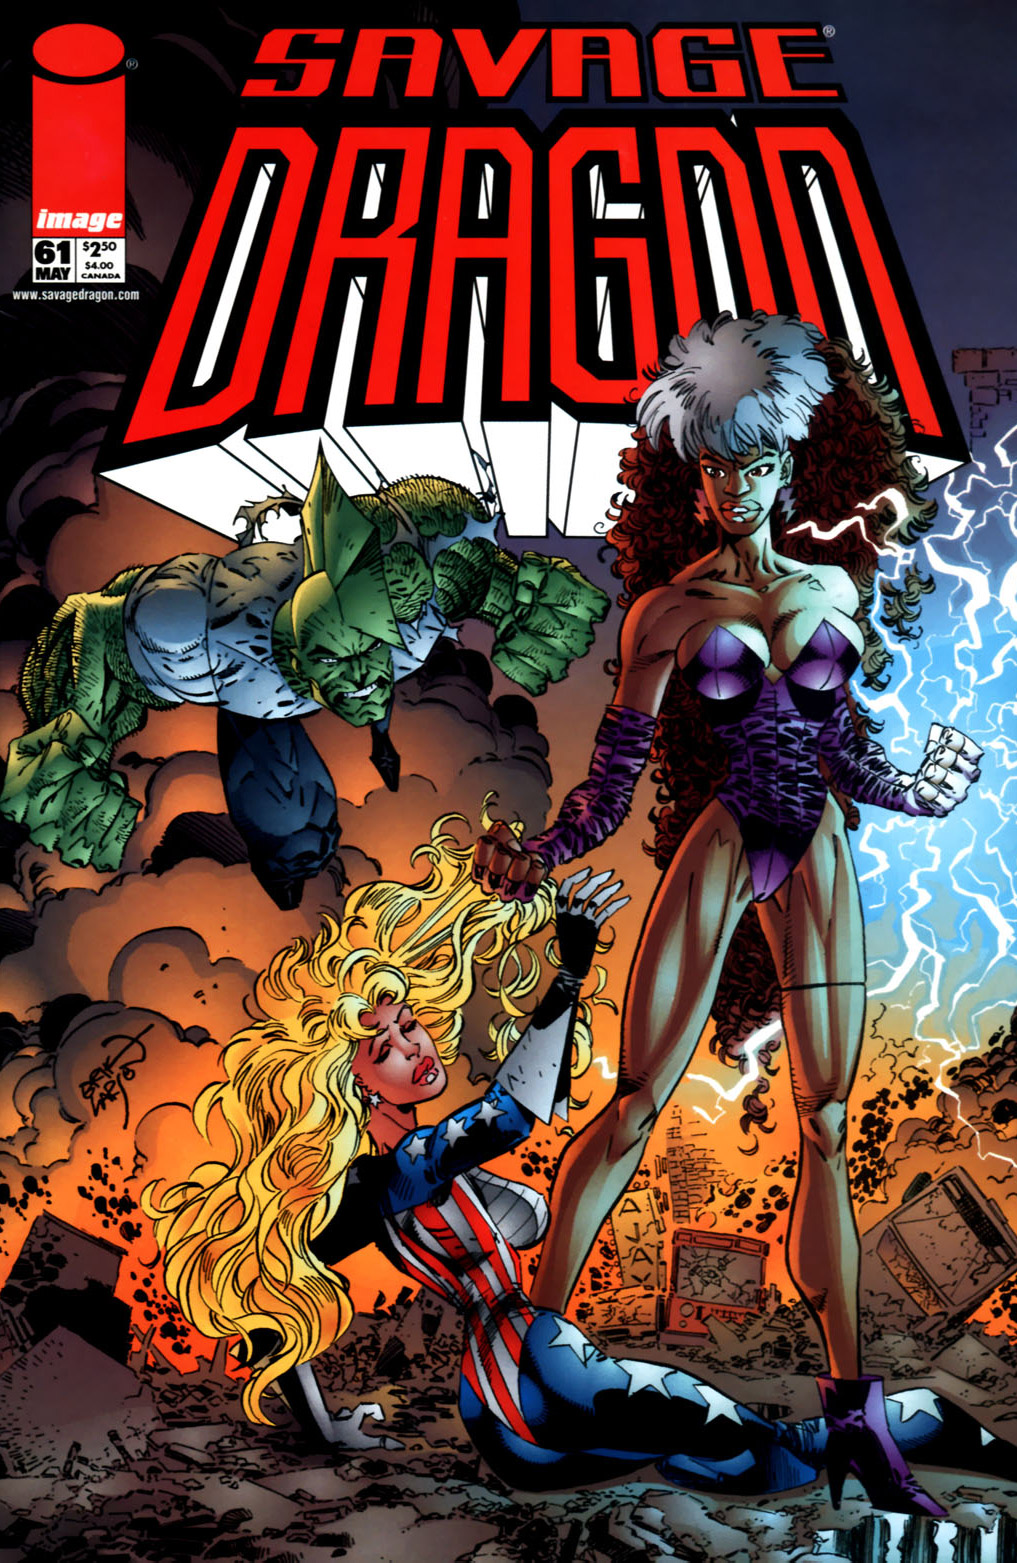 Cover Savage Dragon Vol.2 #61